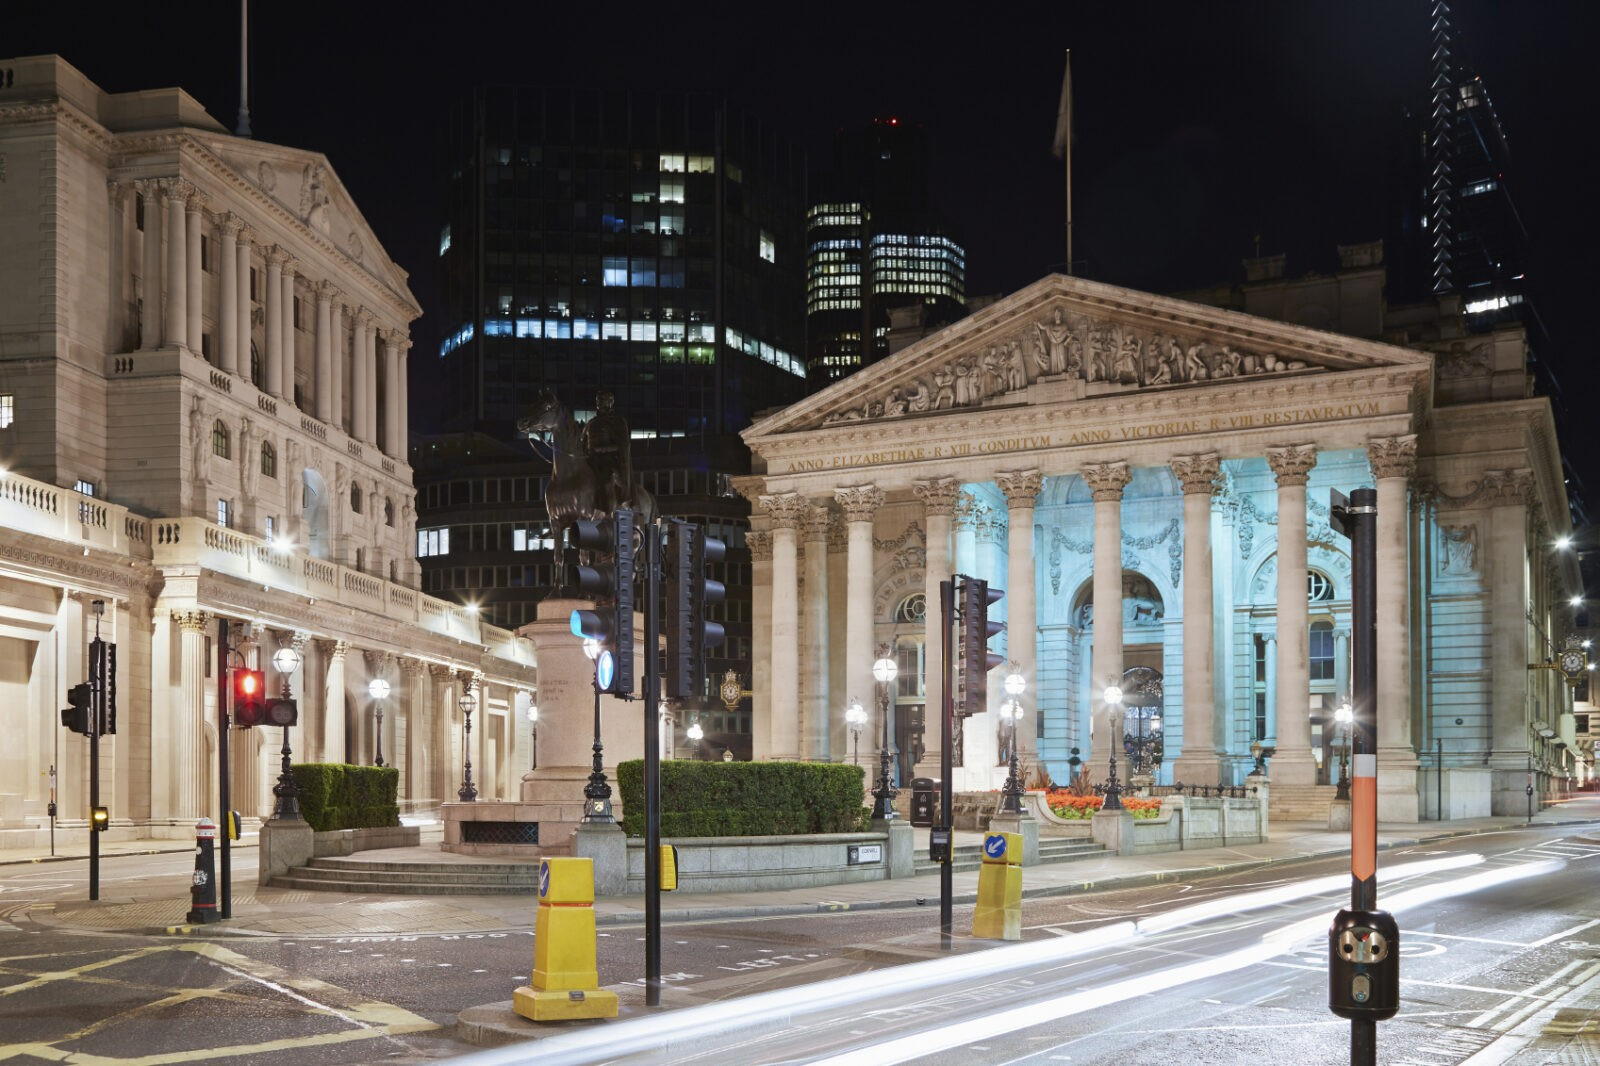 London Royal Exchange, luxury shopping centre and Bank of Englan